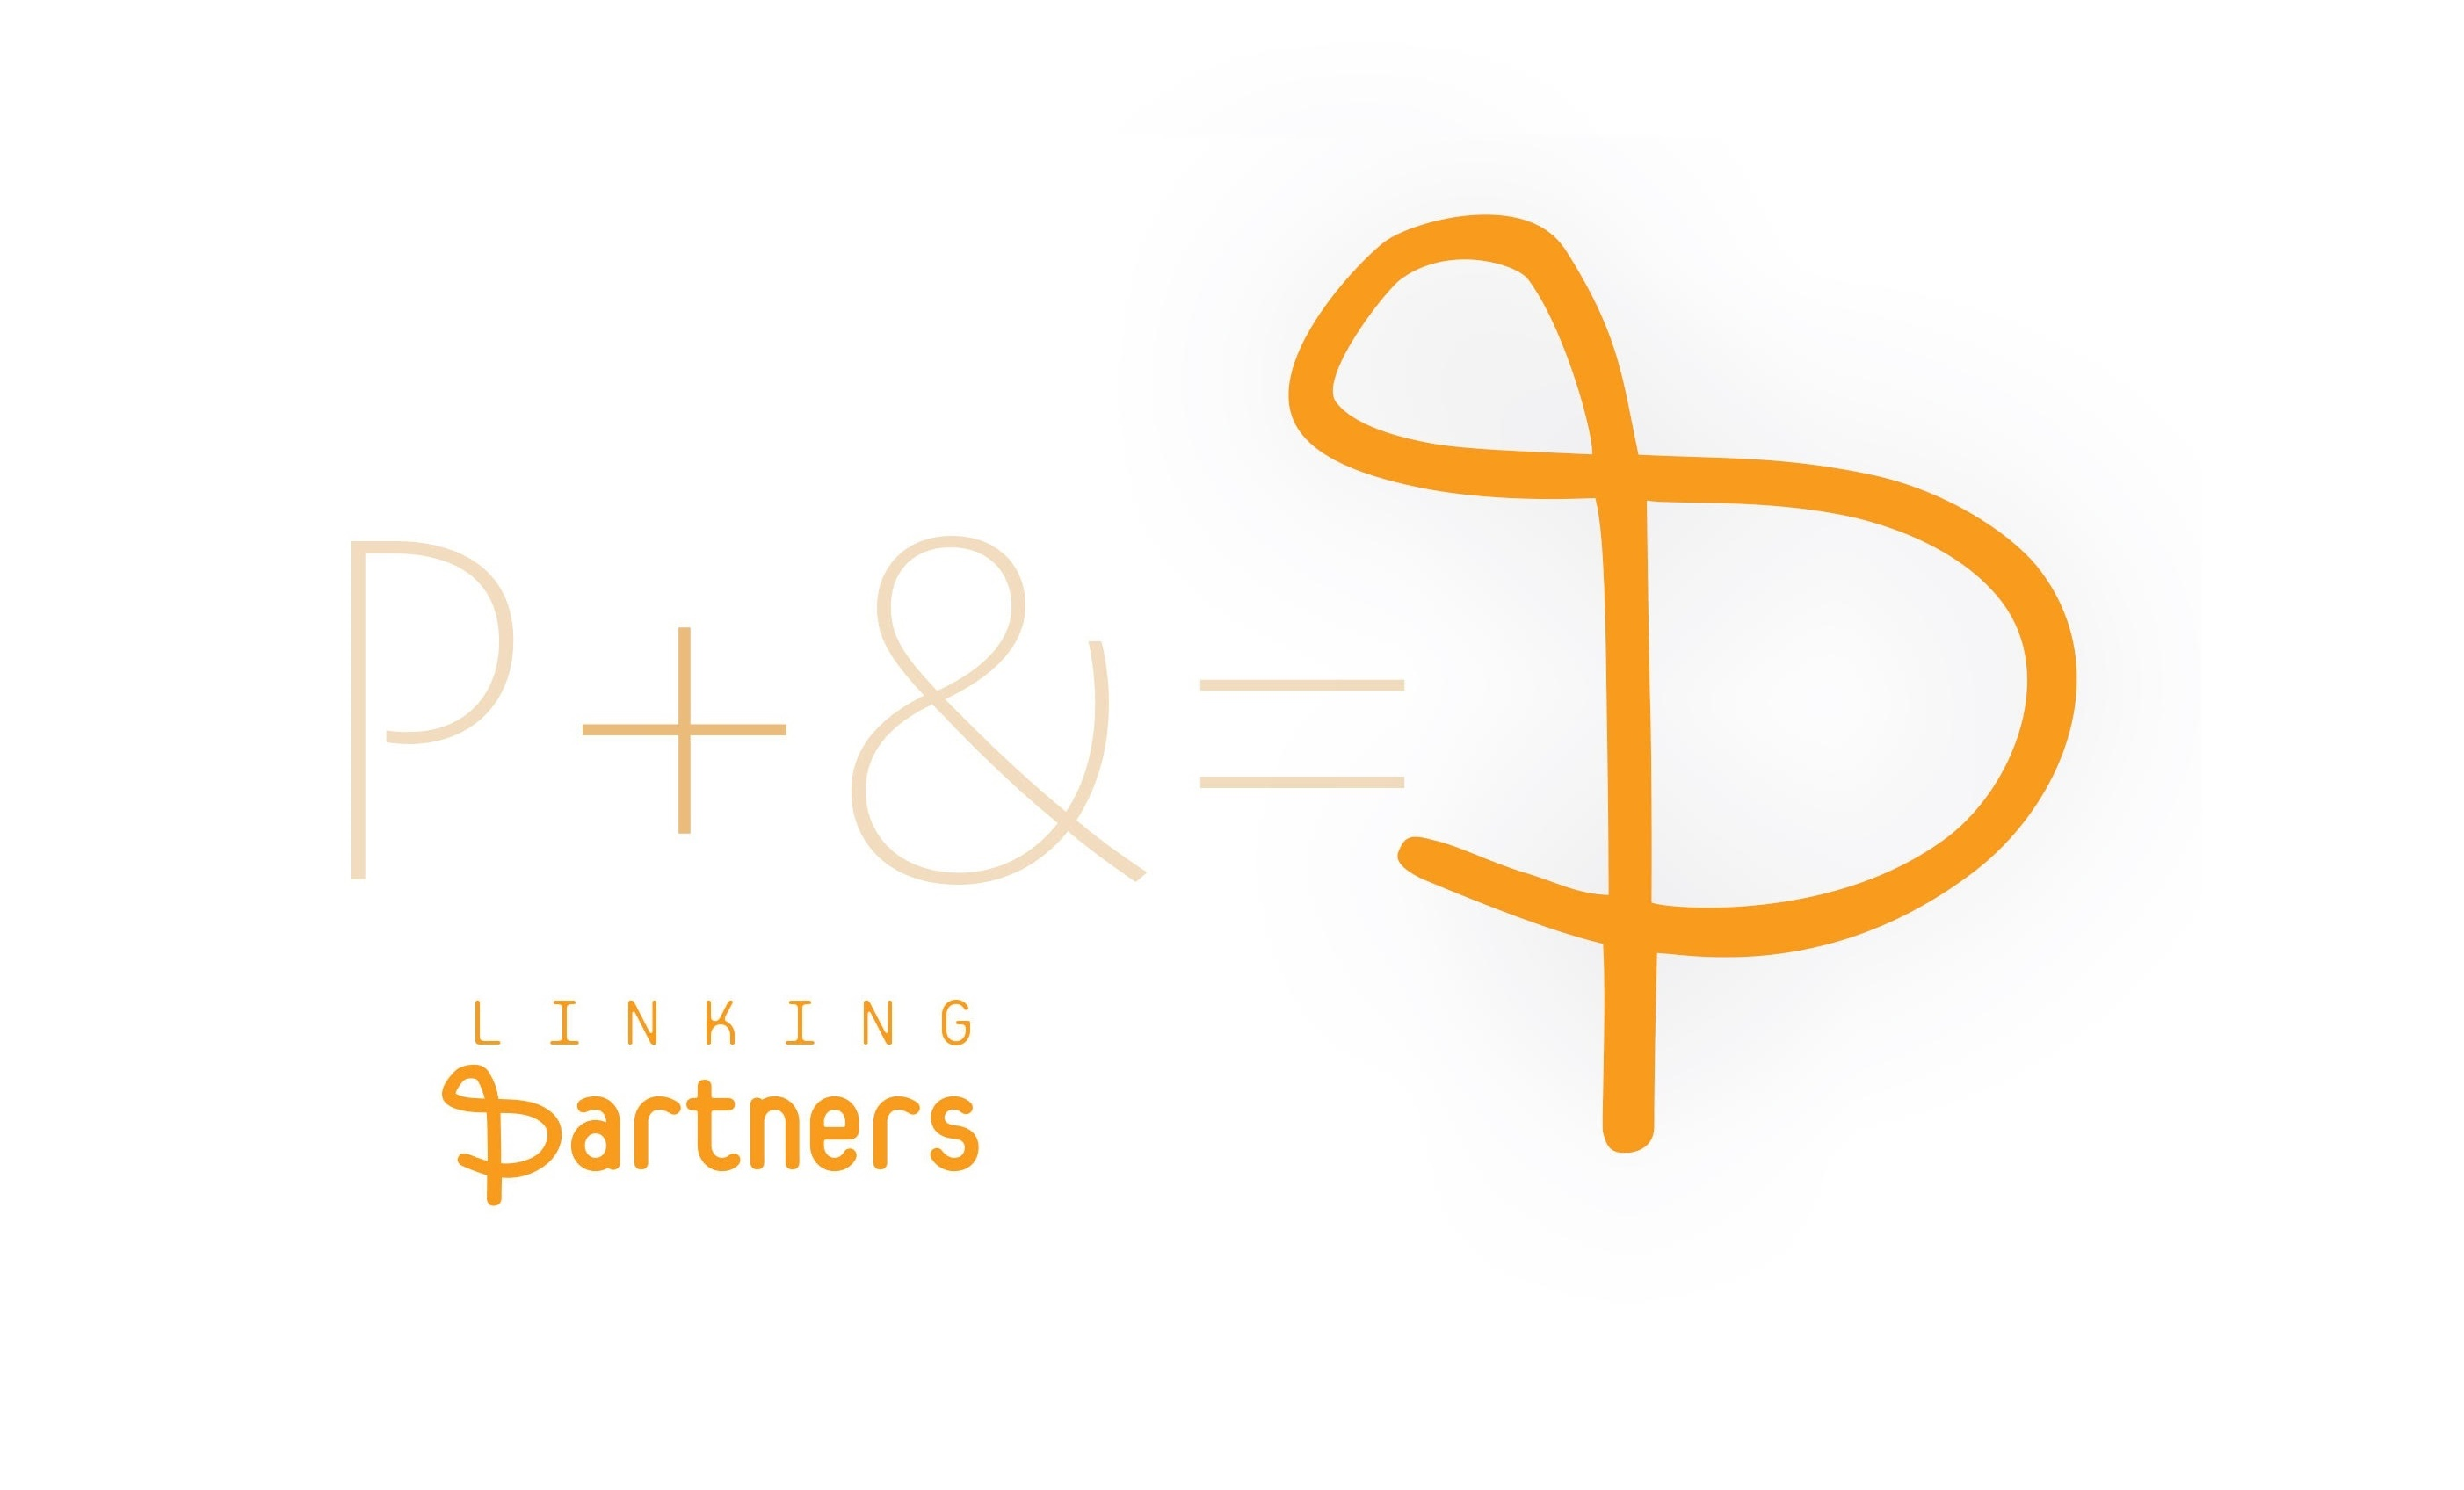 LINKING PARTNERS